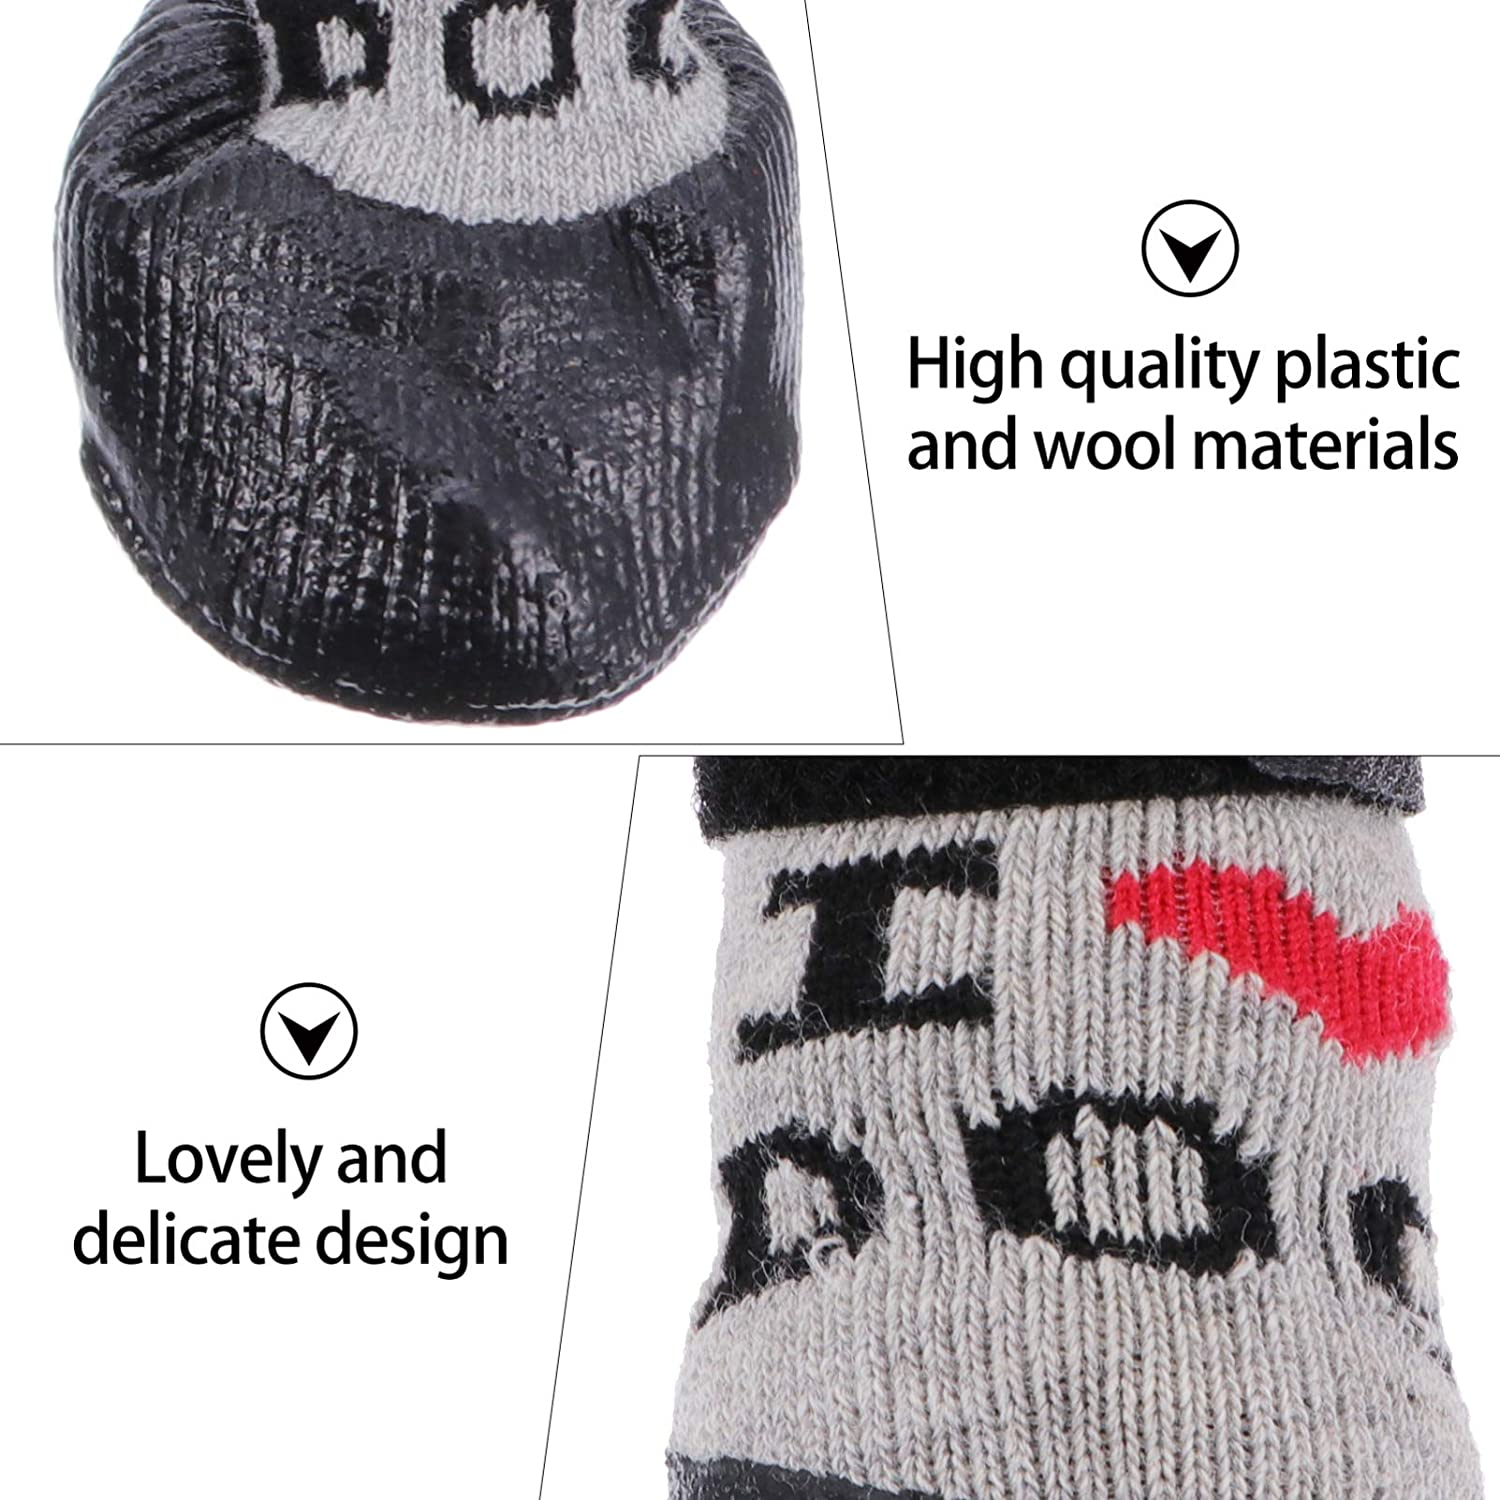 Balacoo 4pcs Dog Socks Anti-Skid Dog Boots with Adjustable Straps Pet Paw Protector for Indoor Foot Wear S